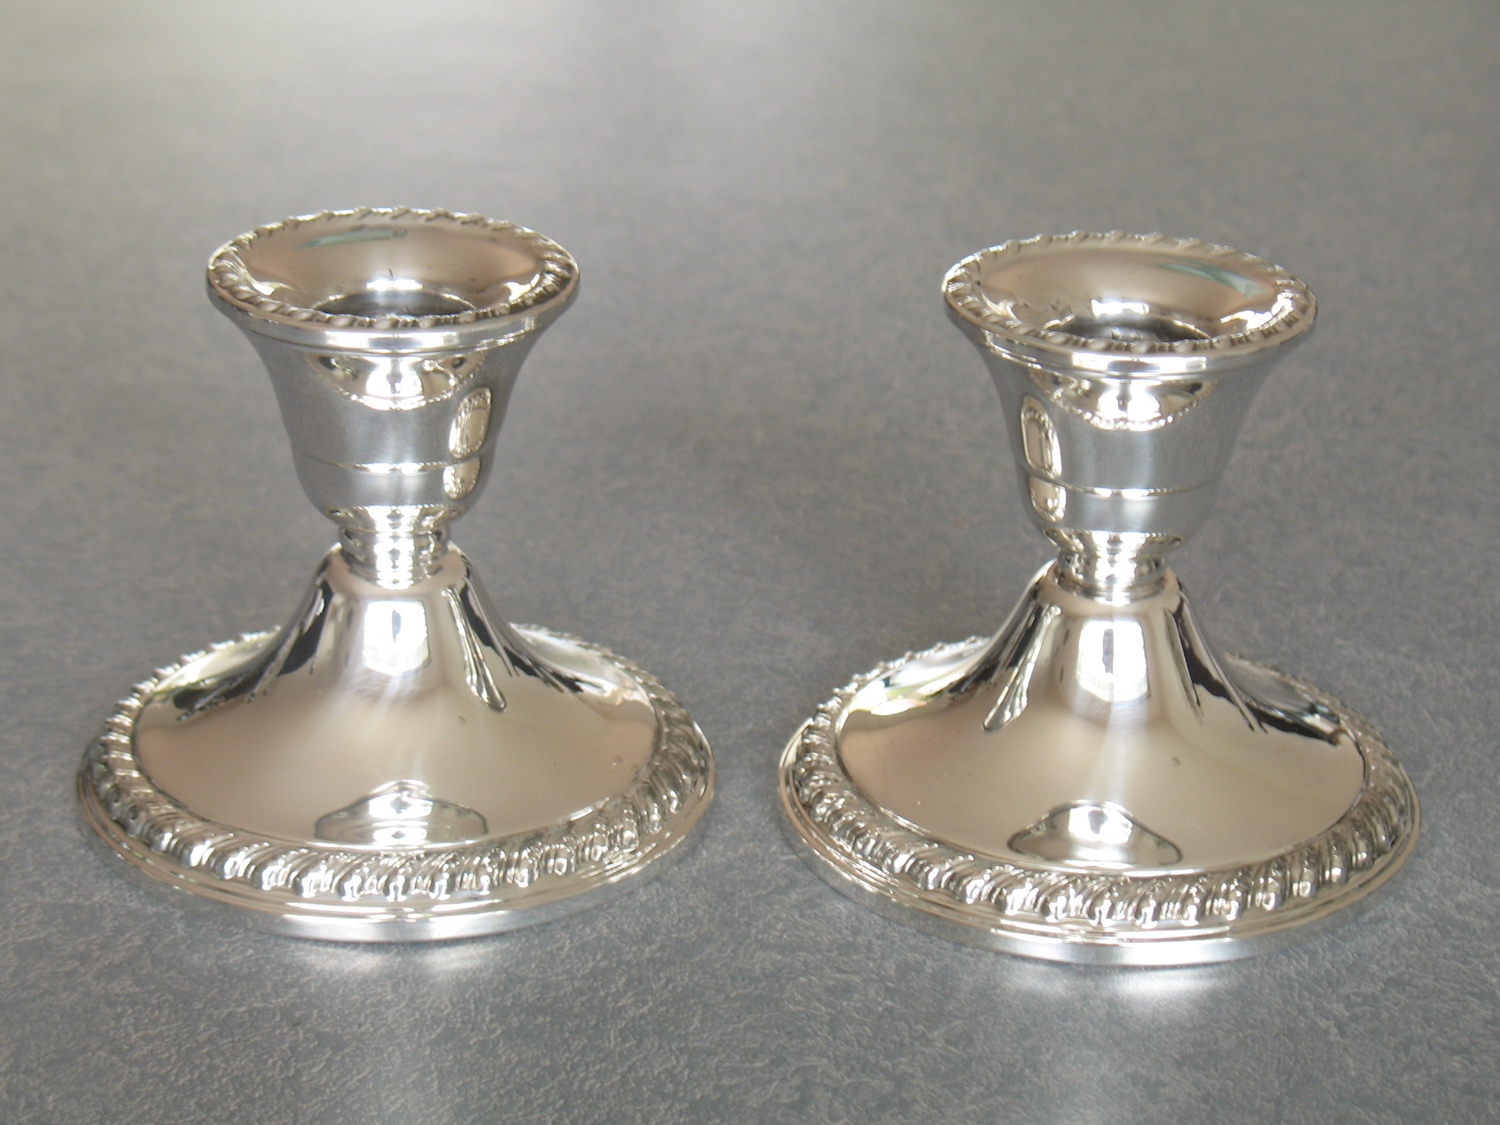 carousel-repaired-sterling-silver-candlesticks .JPG